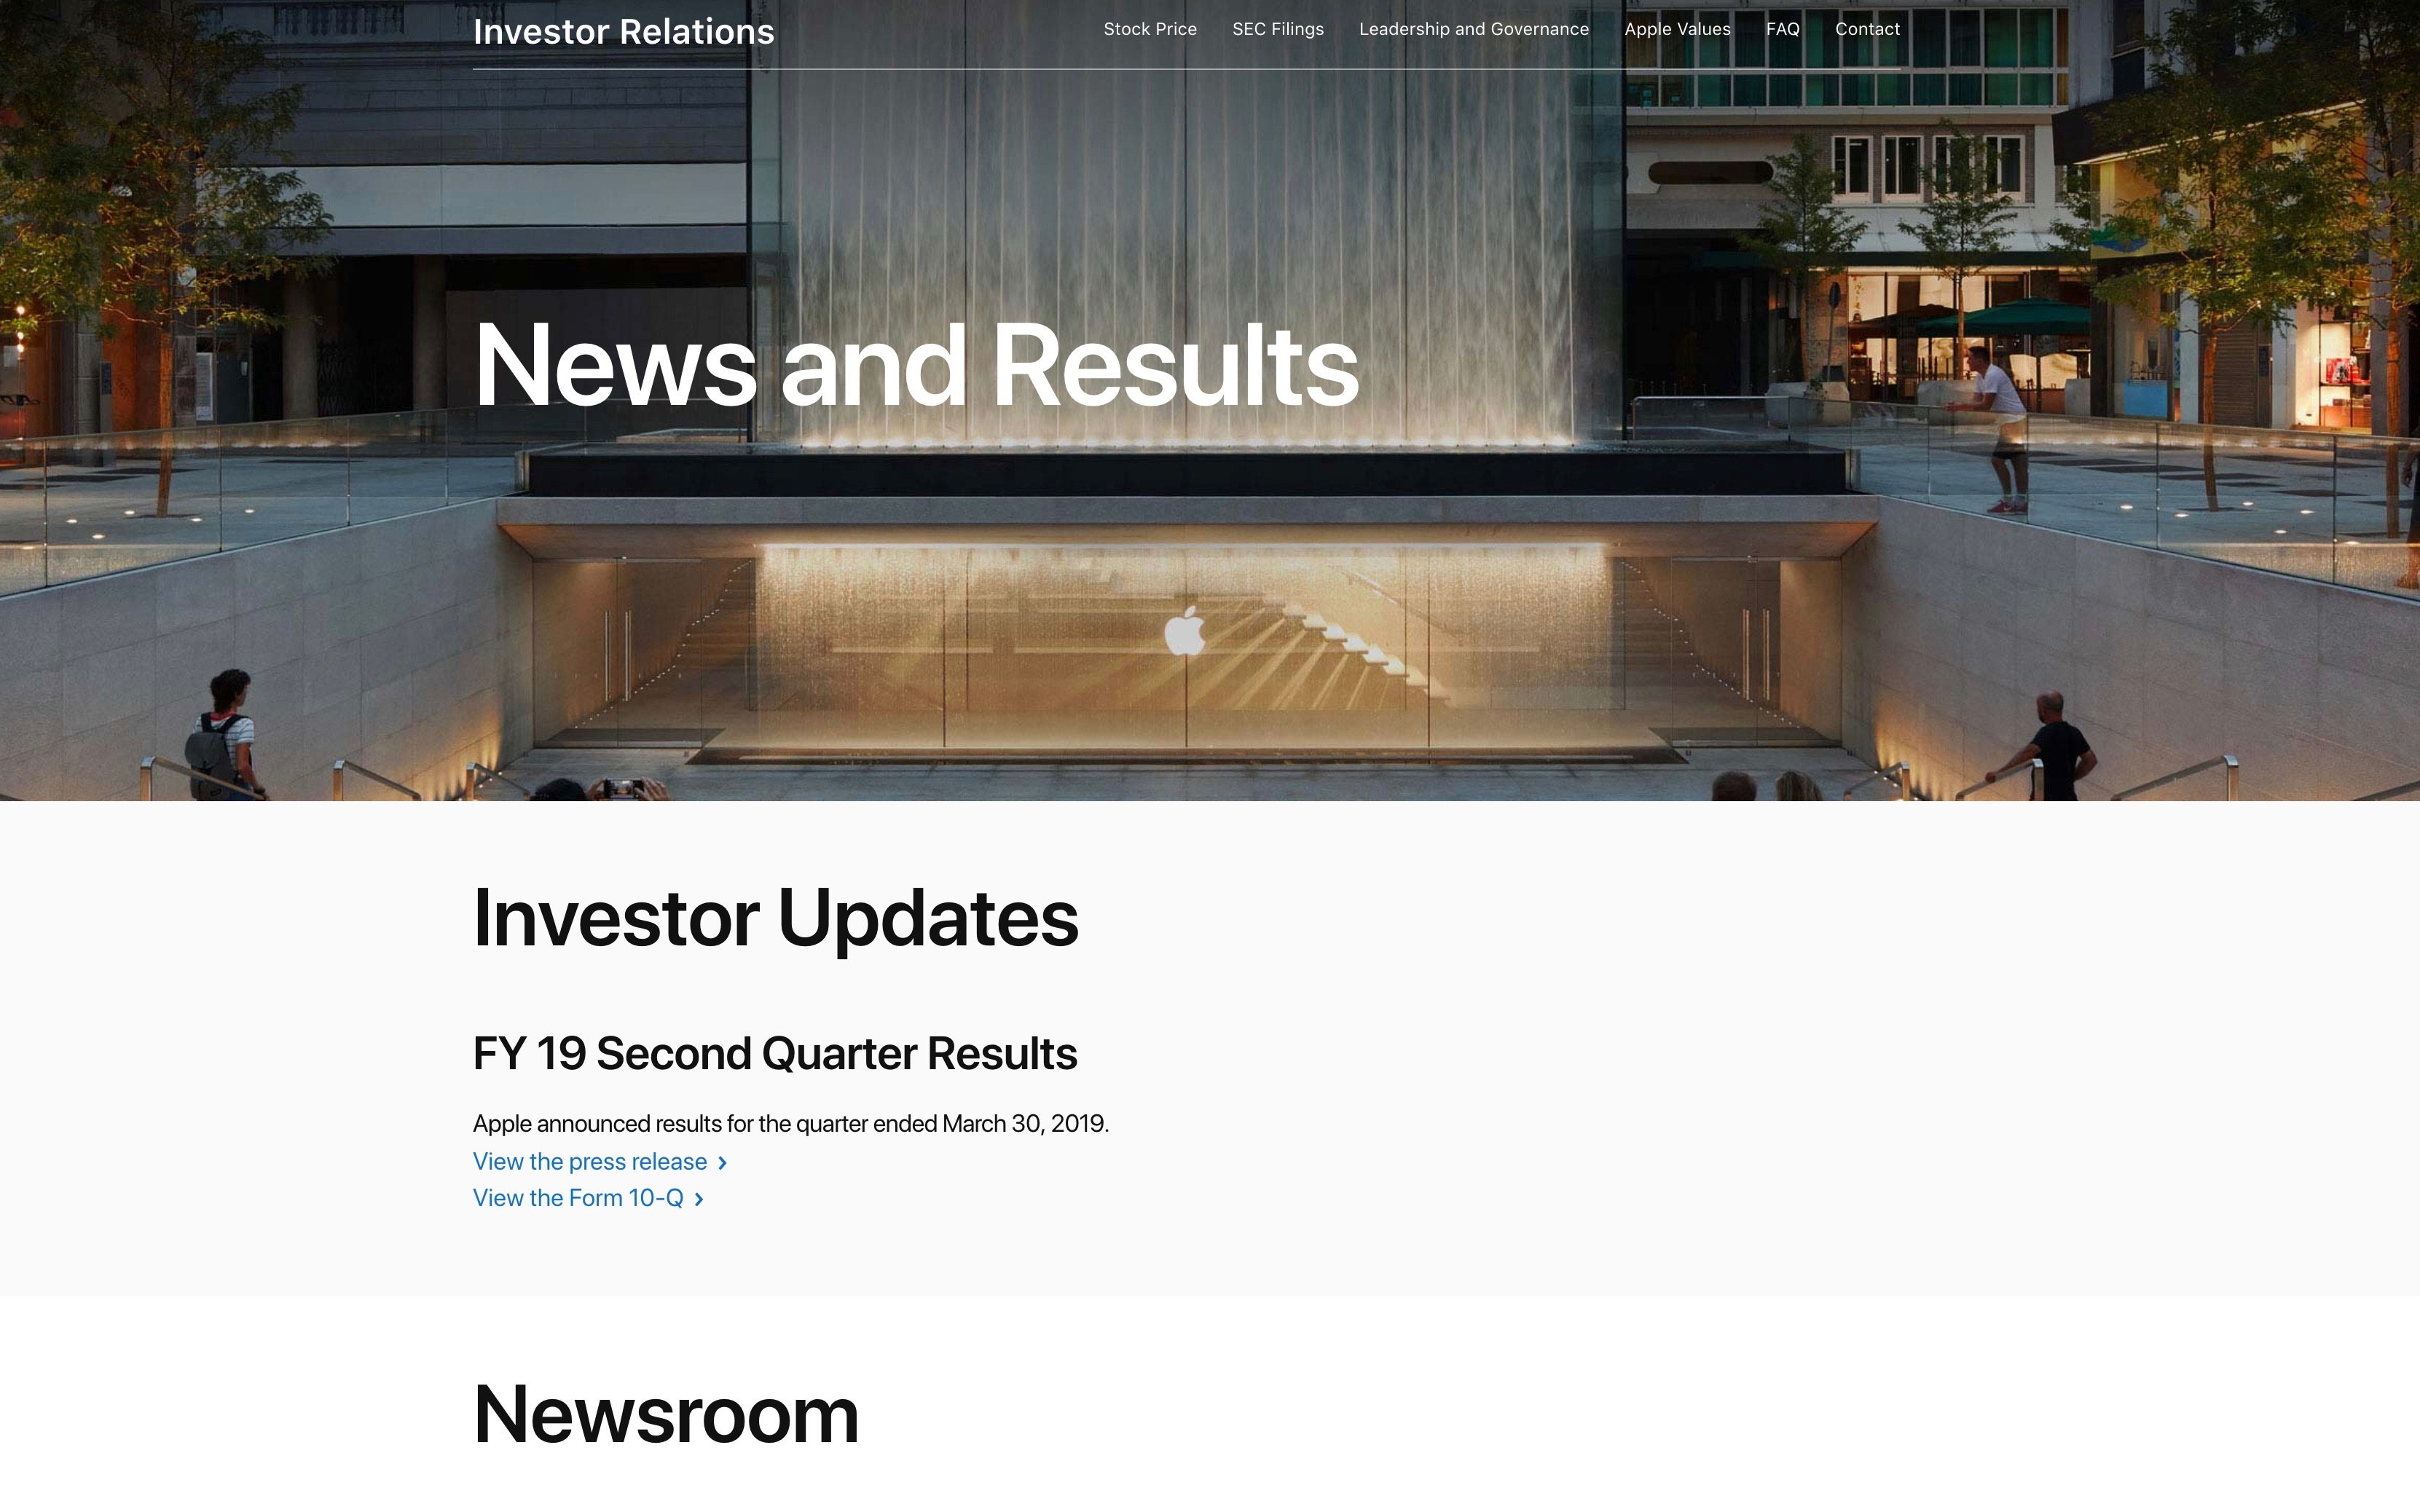 Apple overhauls Investor Relations webpage with Newsroom focus, SEC email notifications